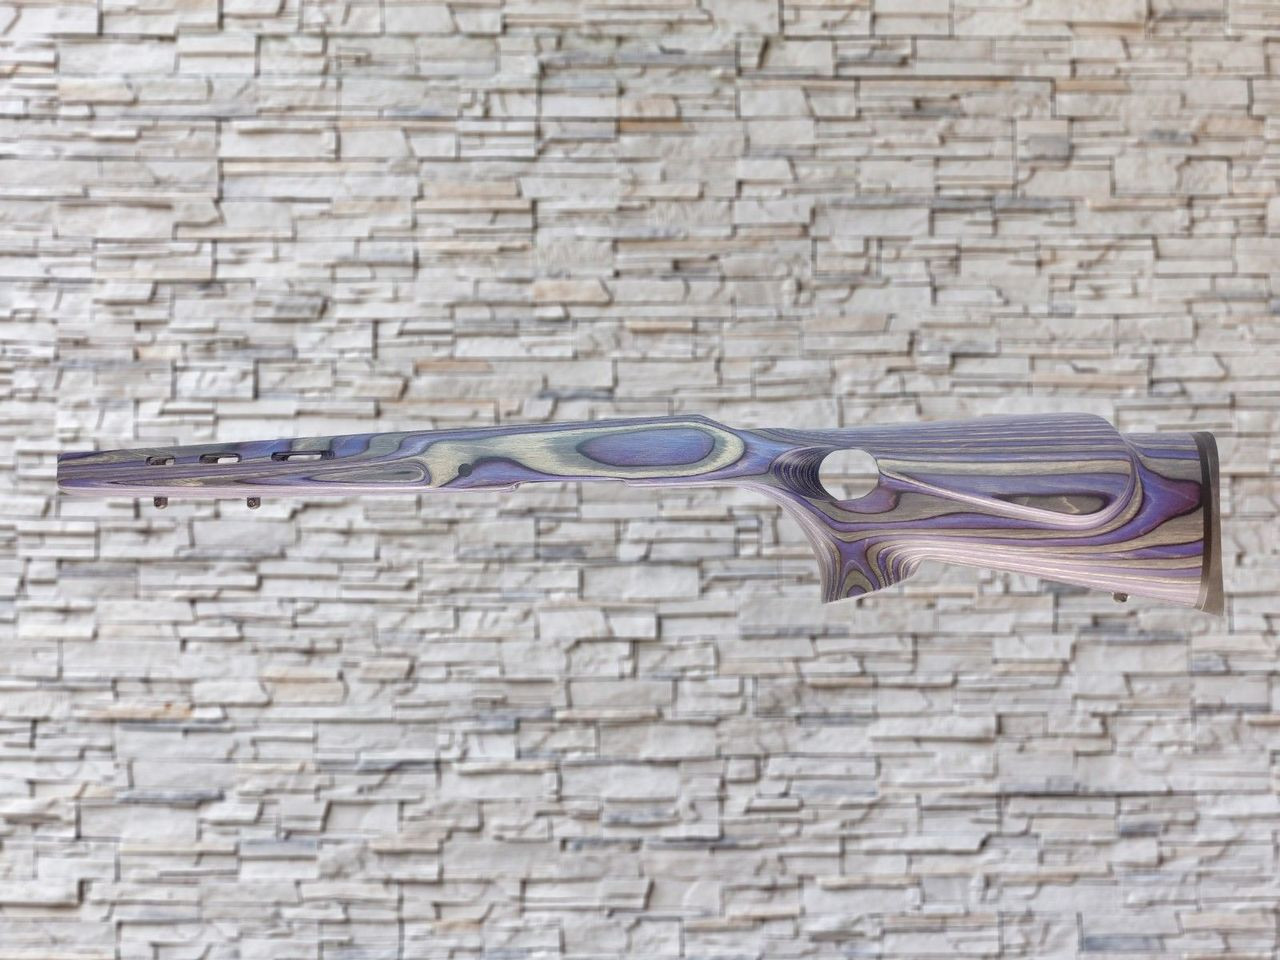 Boyds Featherweight Wood Stock Royal Purple for Ruger American Short Action